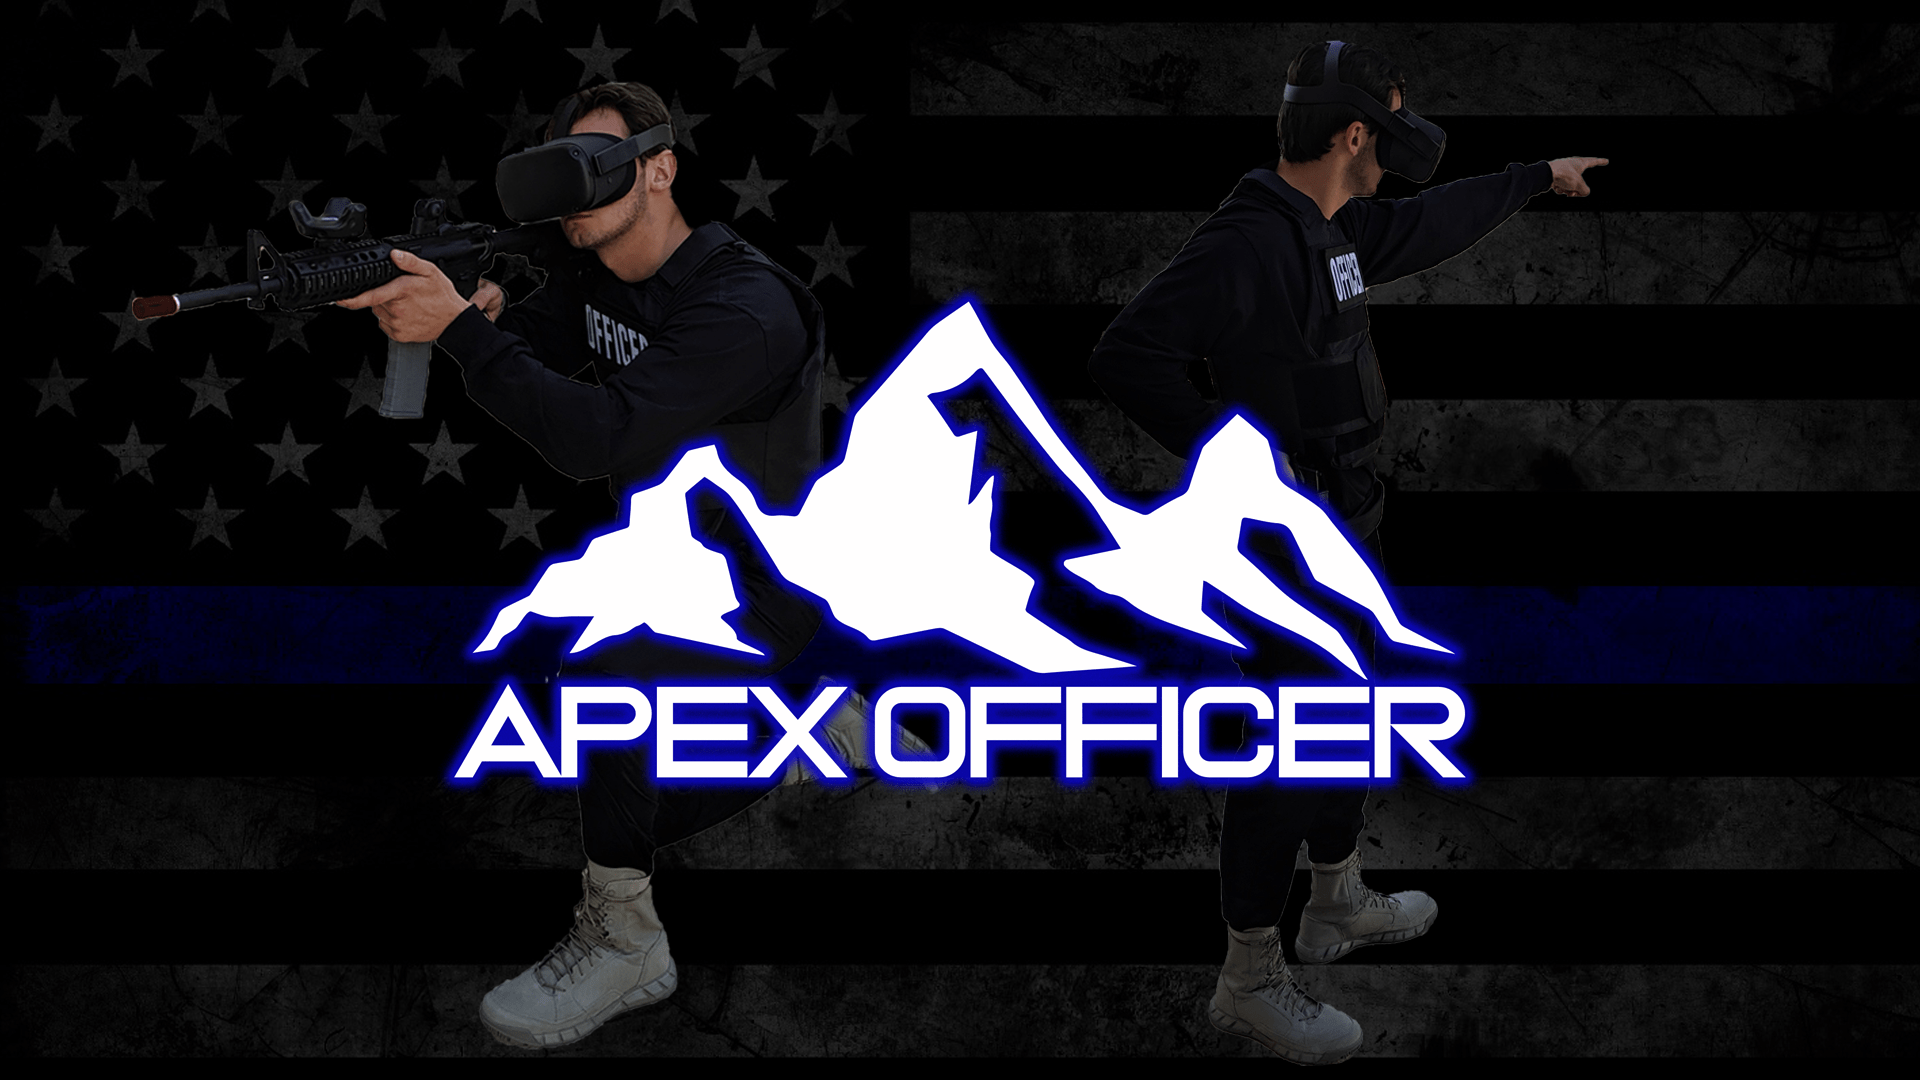 Apex Officer is the best VRtraining simulator for police officers and law enforcement agencies.